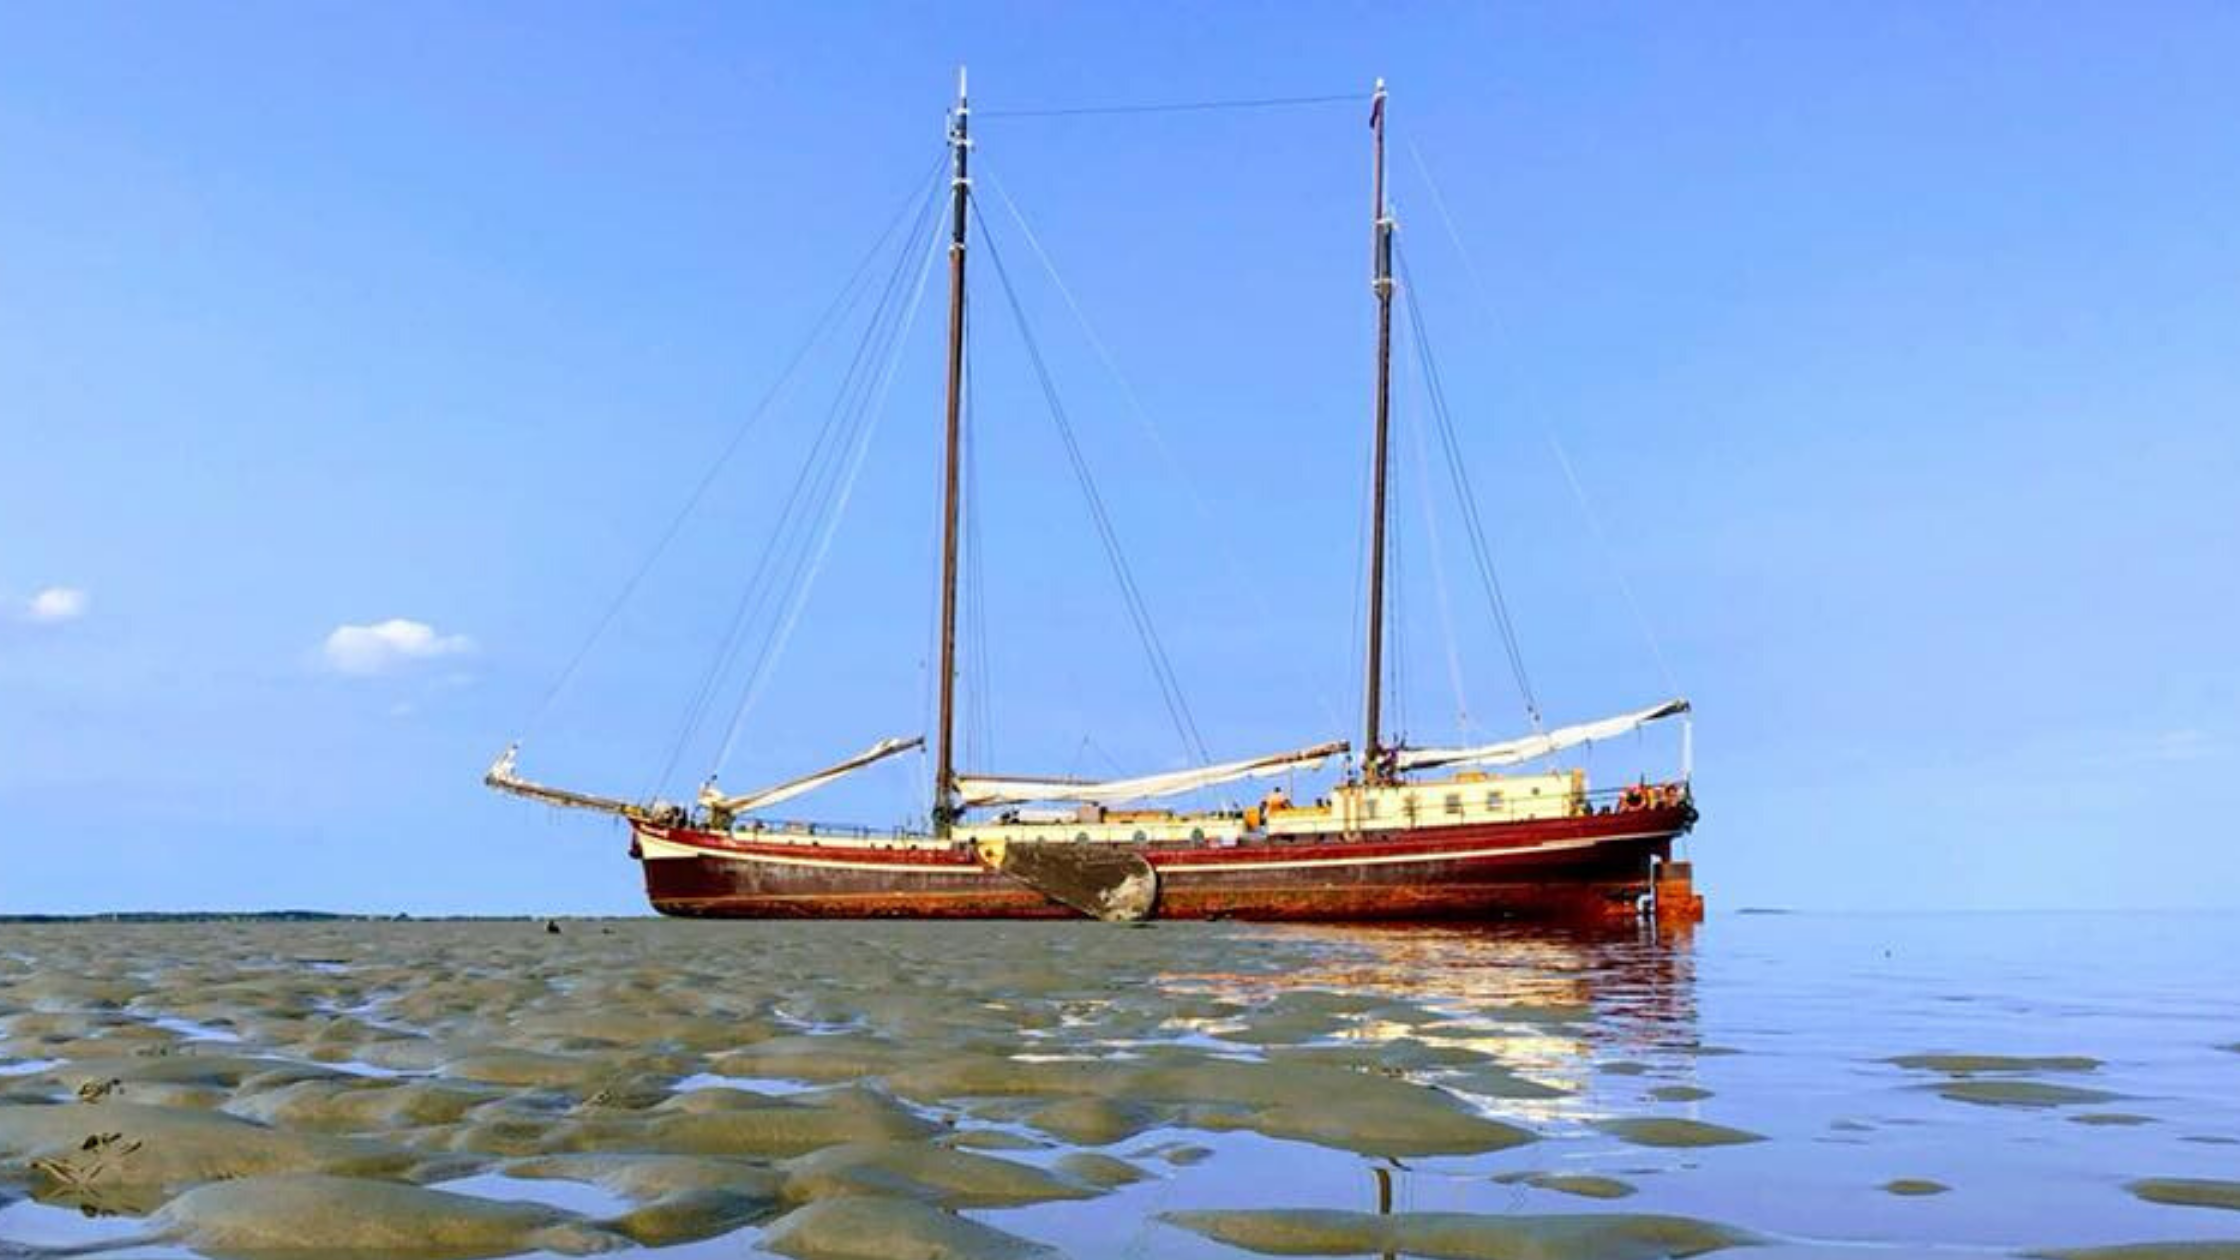 Sailing ship the Water Wolf during a dry fall on the mudflats